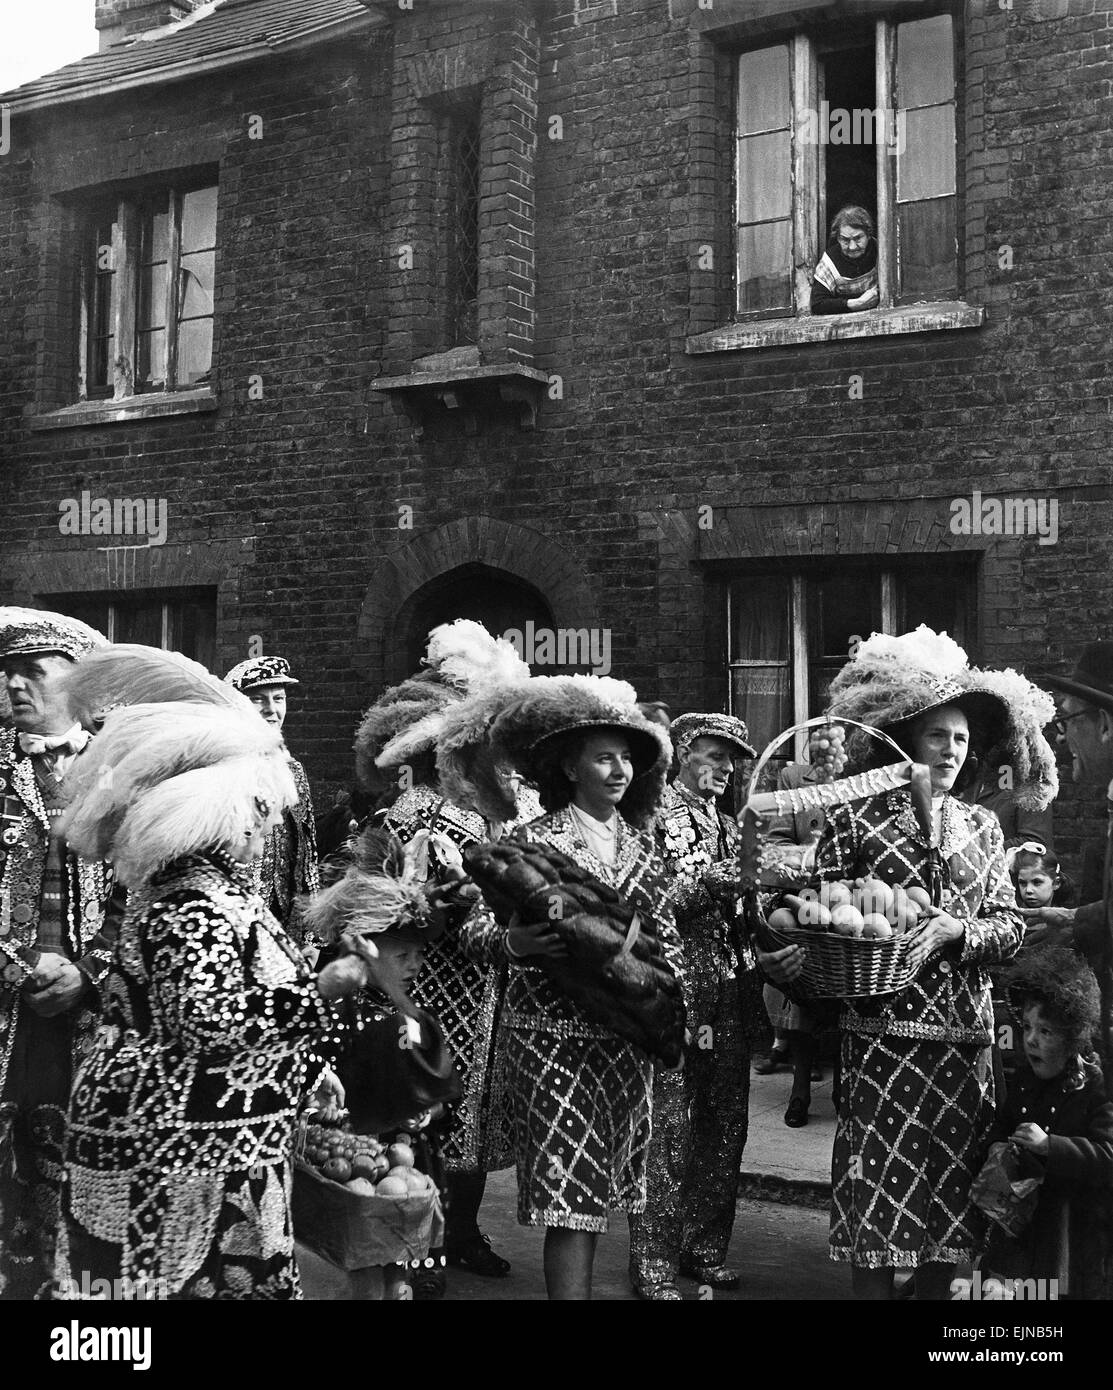 Pearly Kings and Queens arrive at St Marts Church Walworth with offerings for the 'Pearlies' Harvest Festival. - Stock Image